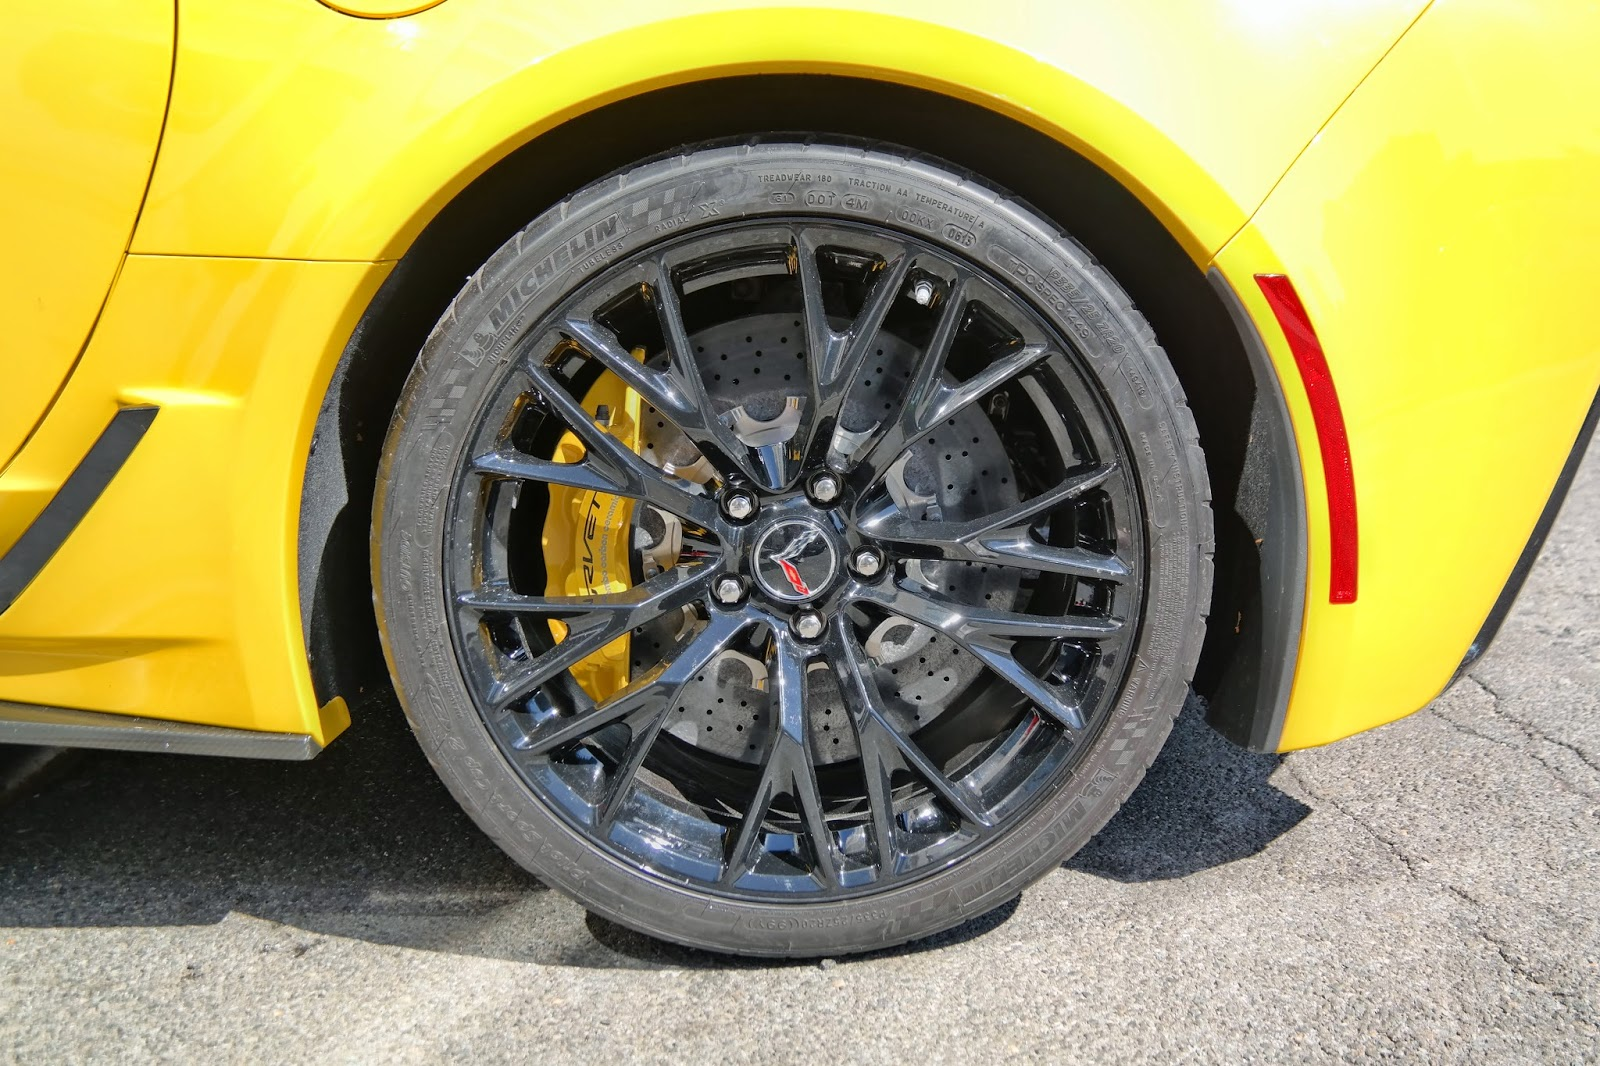 2014 Corvette C7 Z06 Brake Calipers Rims Tires and Rotors